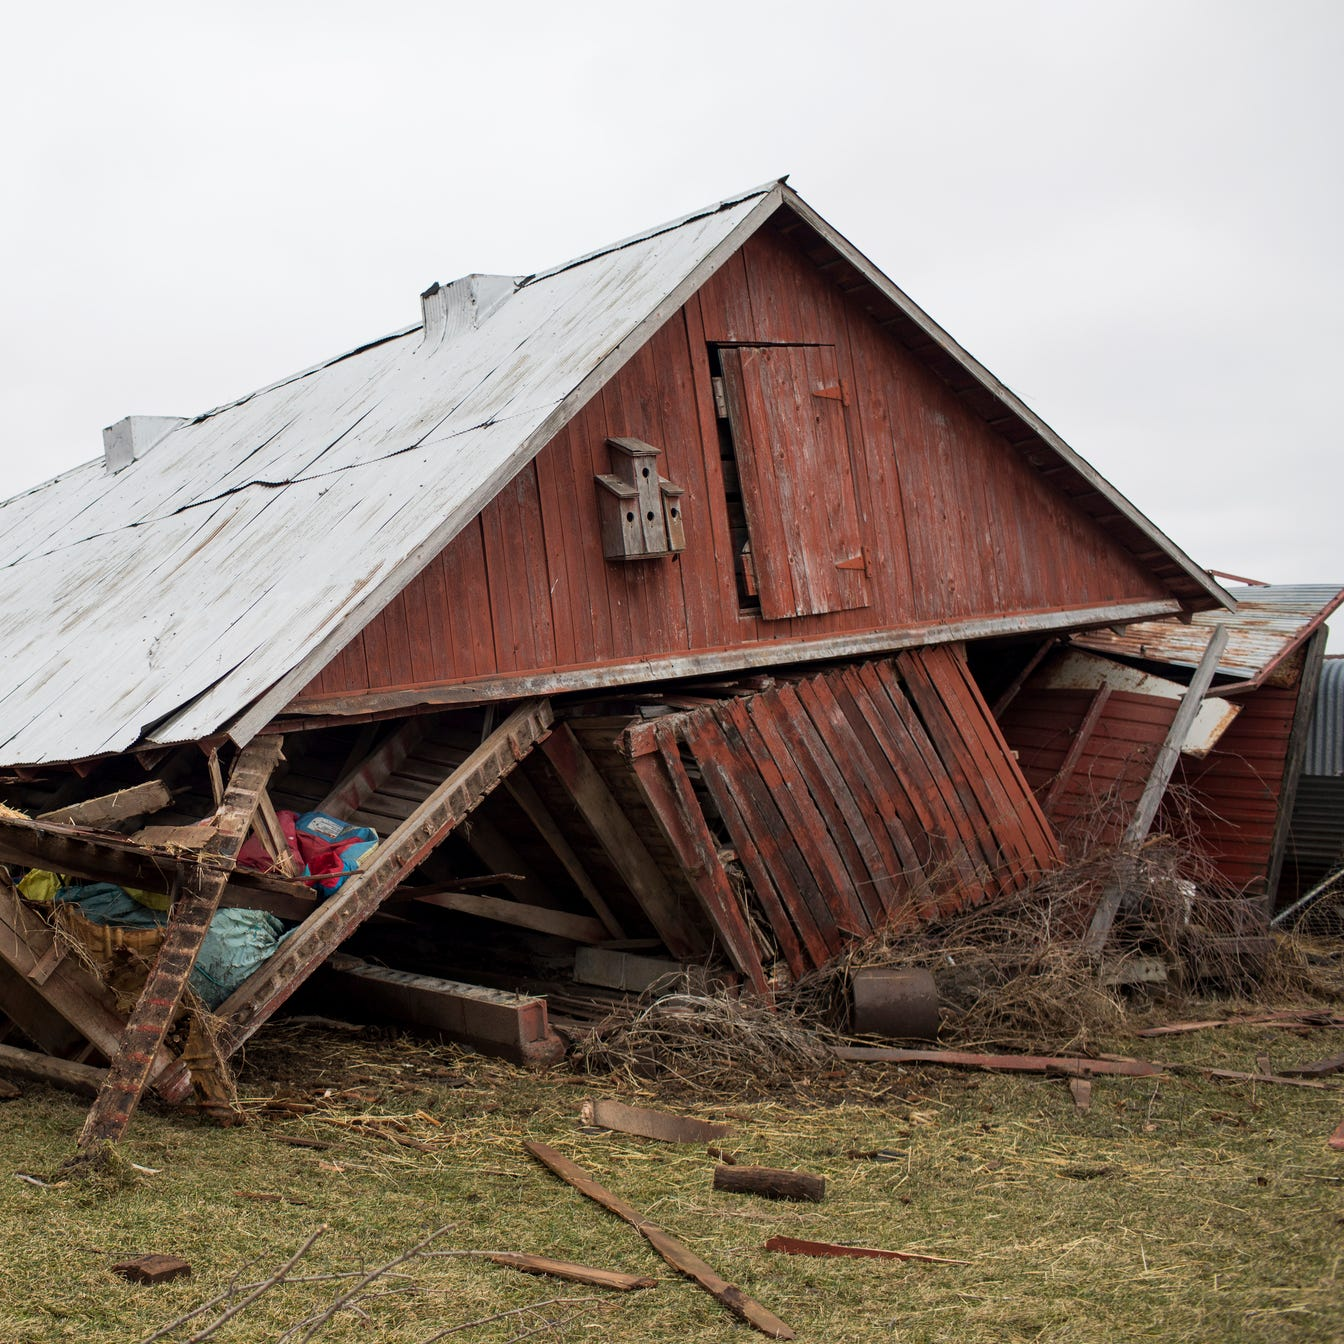 Shiawassee County declares local state of emergency following tornadoes